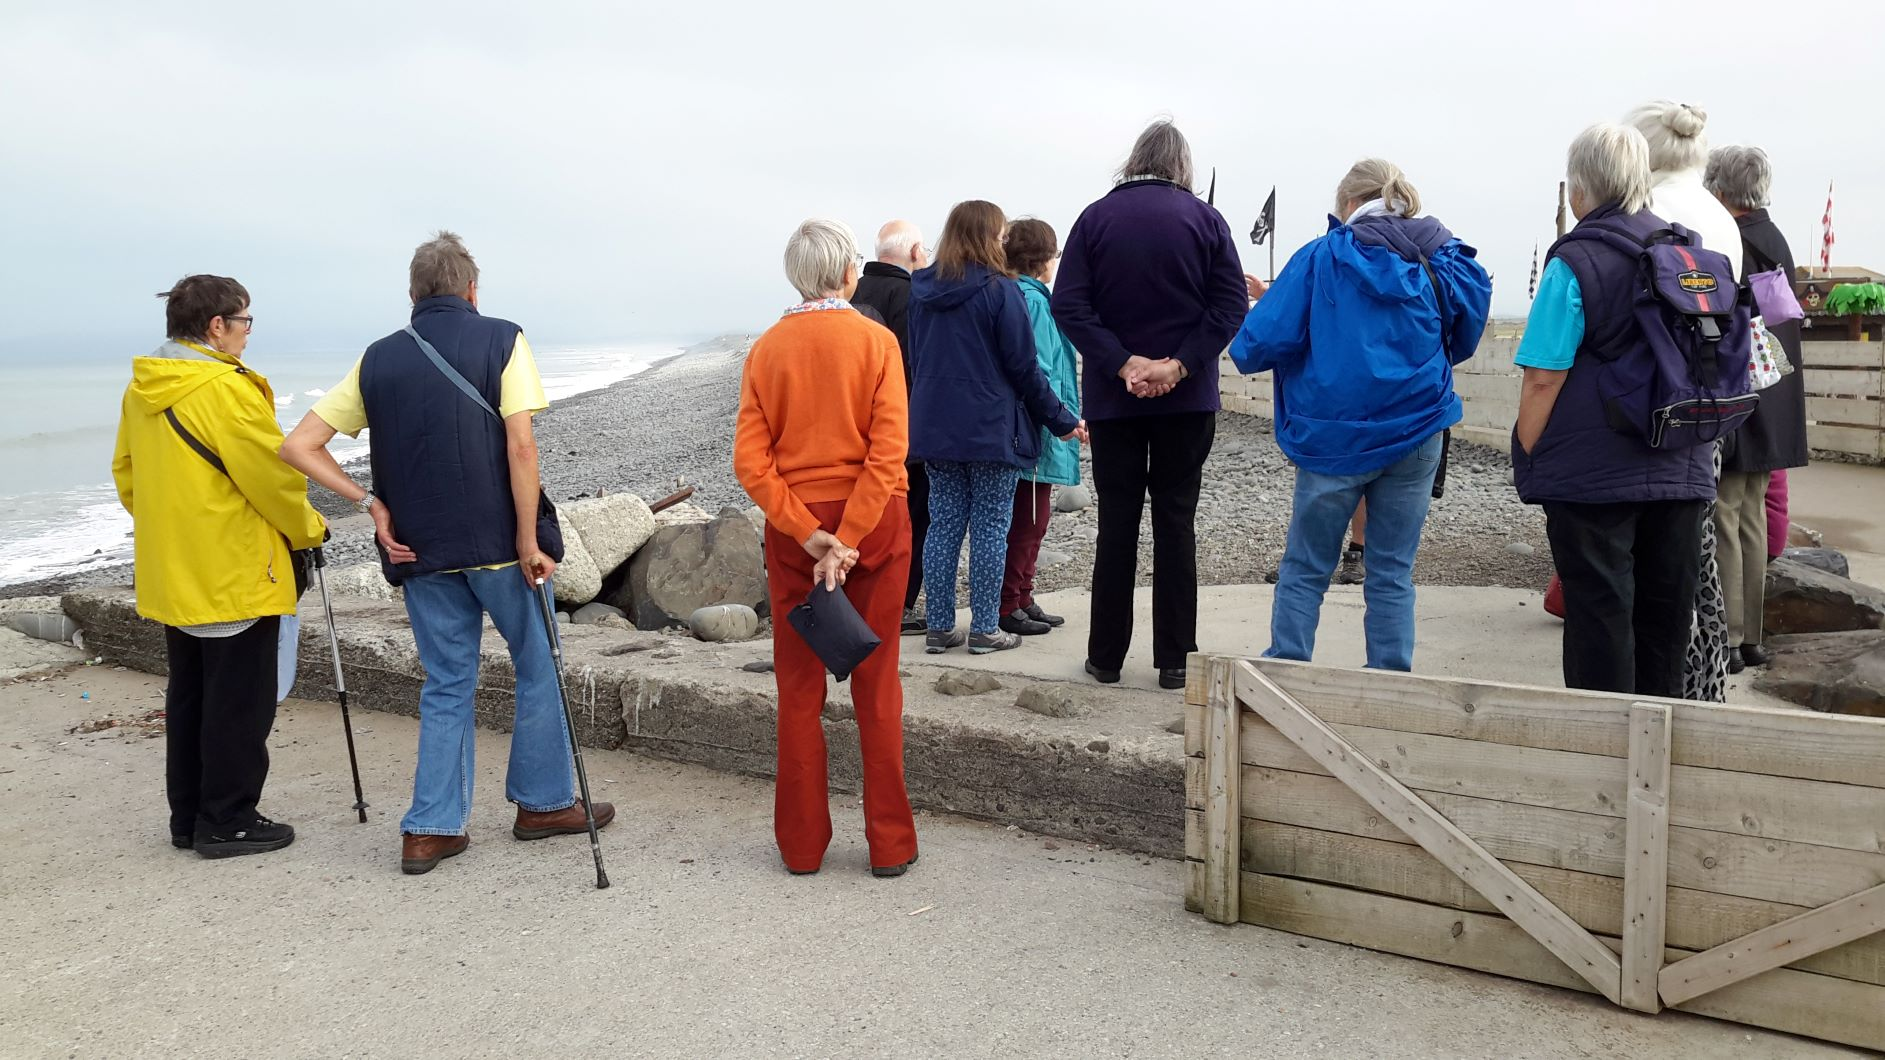 Mixed ability walkers at Westward Ho!